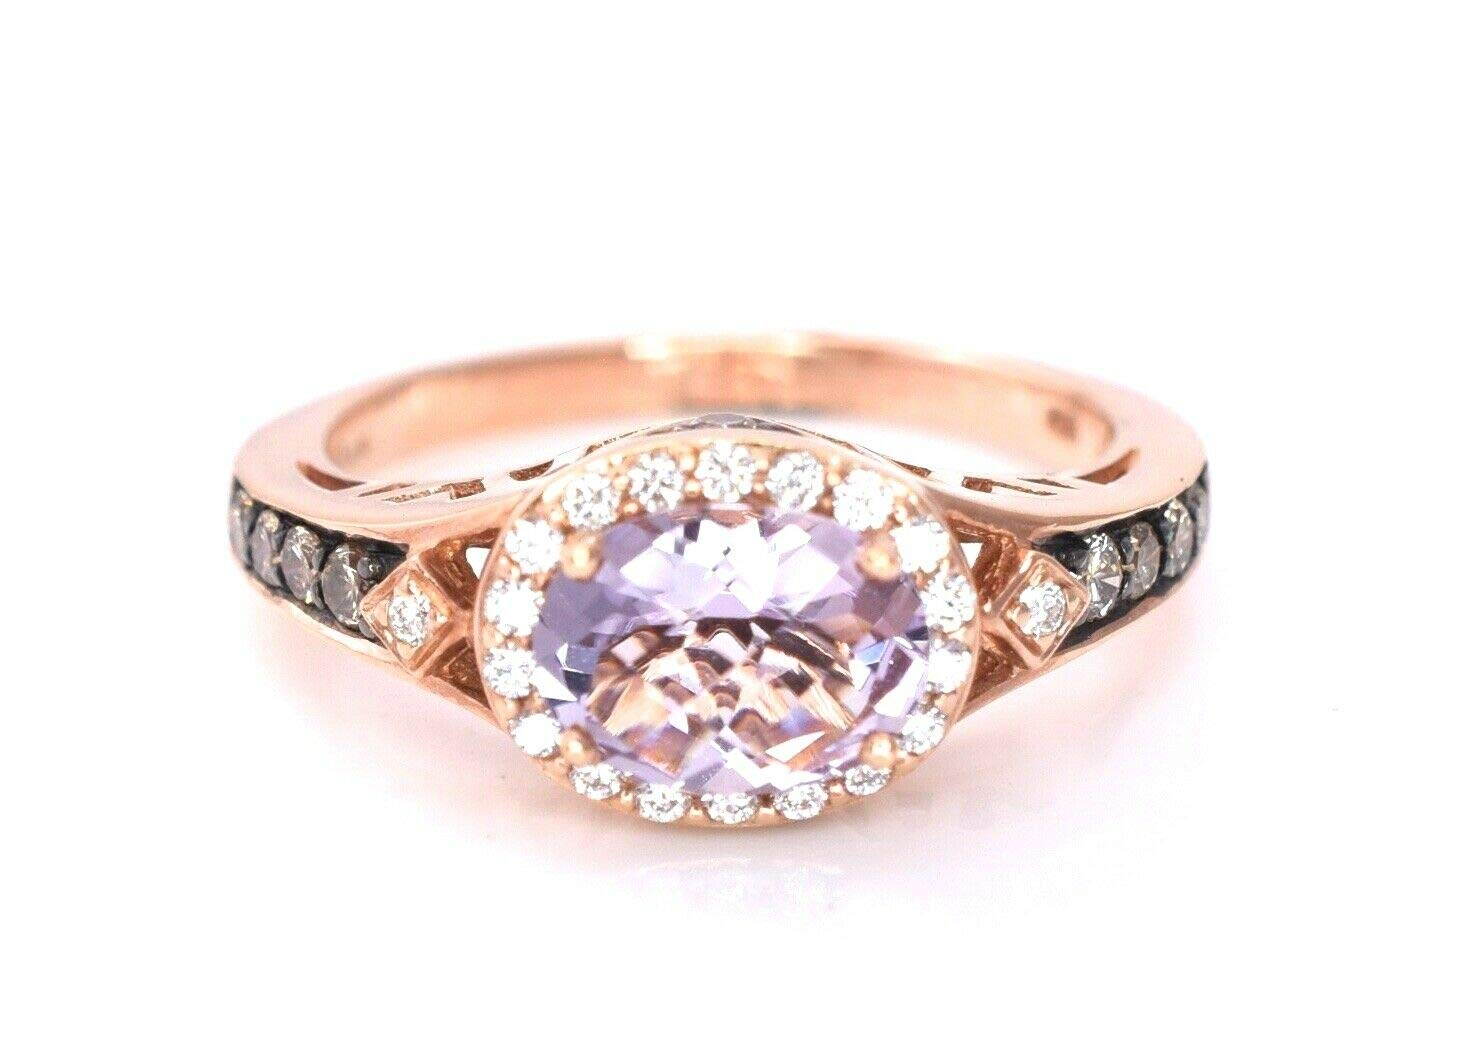 LeVian Pink Amethyst Chocolate Diamonds Cocktail Ring Jewelry 14k Rose Gold by LE VIAN